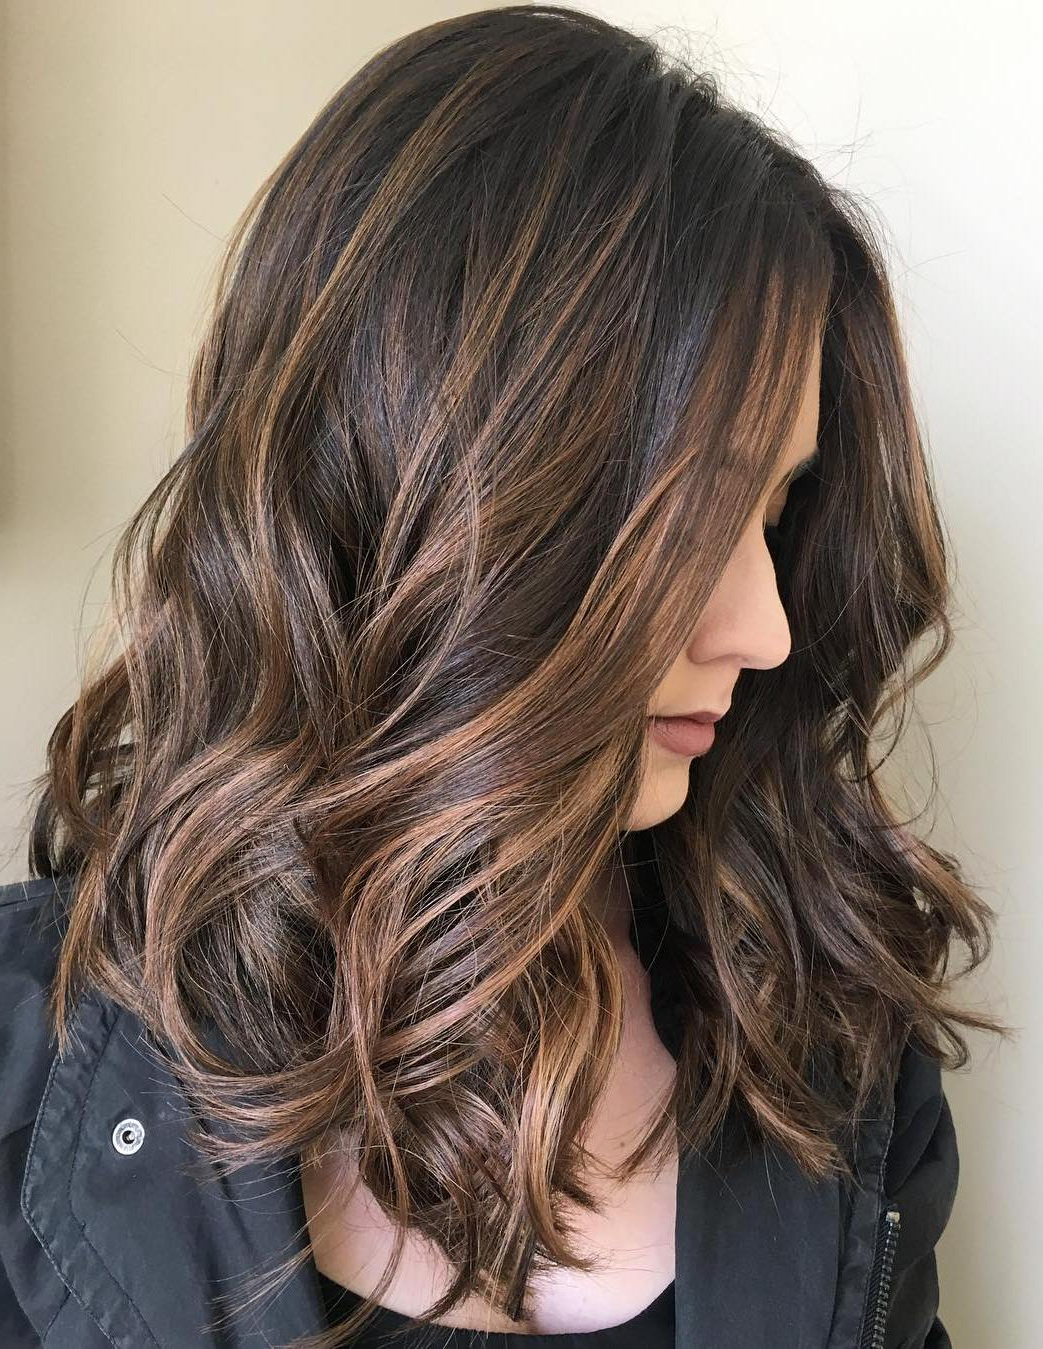 70 Balayage Hair Color Ideas With Blonde, Brown And Caramel Highlights Inside Latest Long Layered Light Chocolate Brown Haircuts (Gallery 10 of 20)